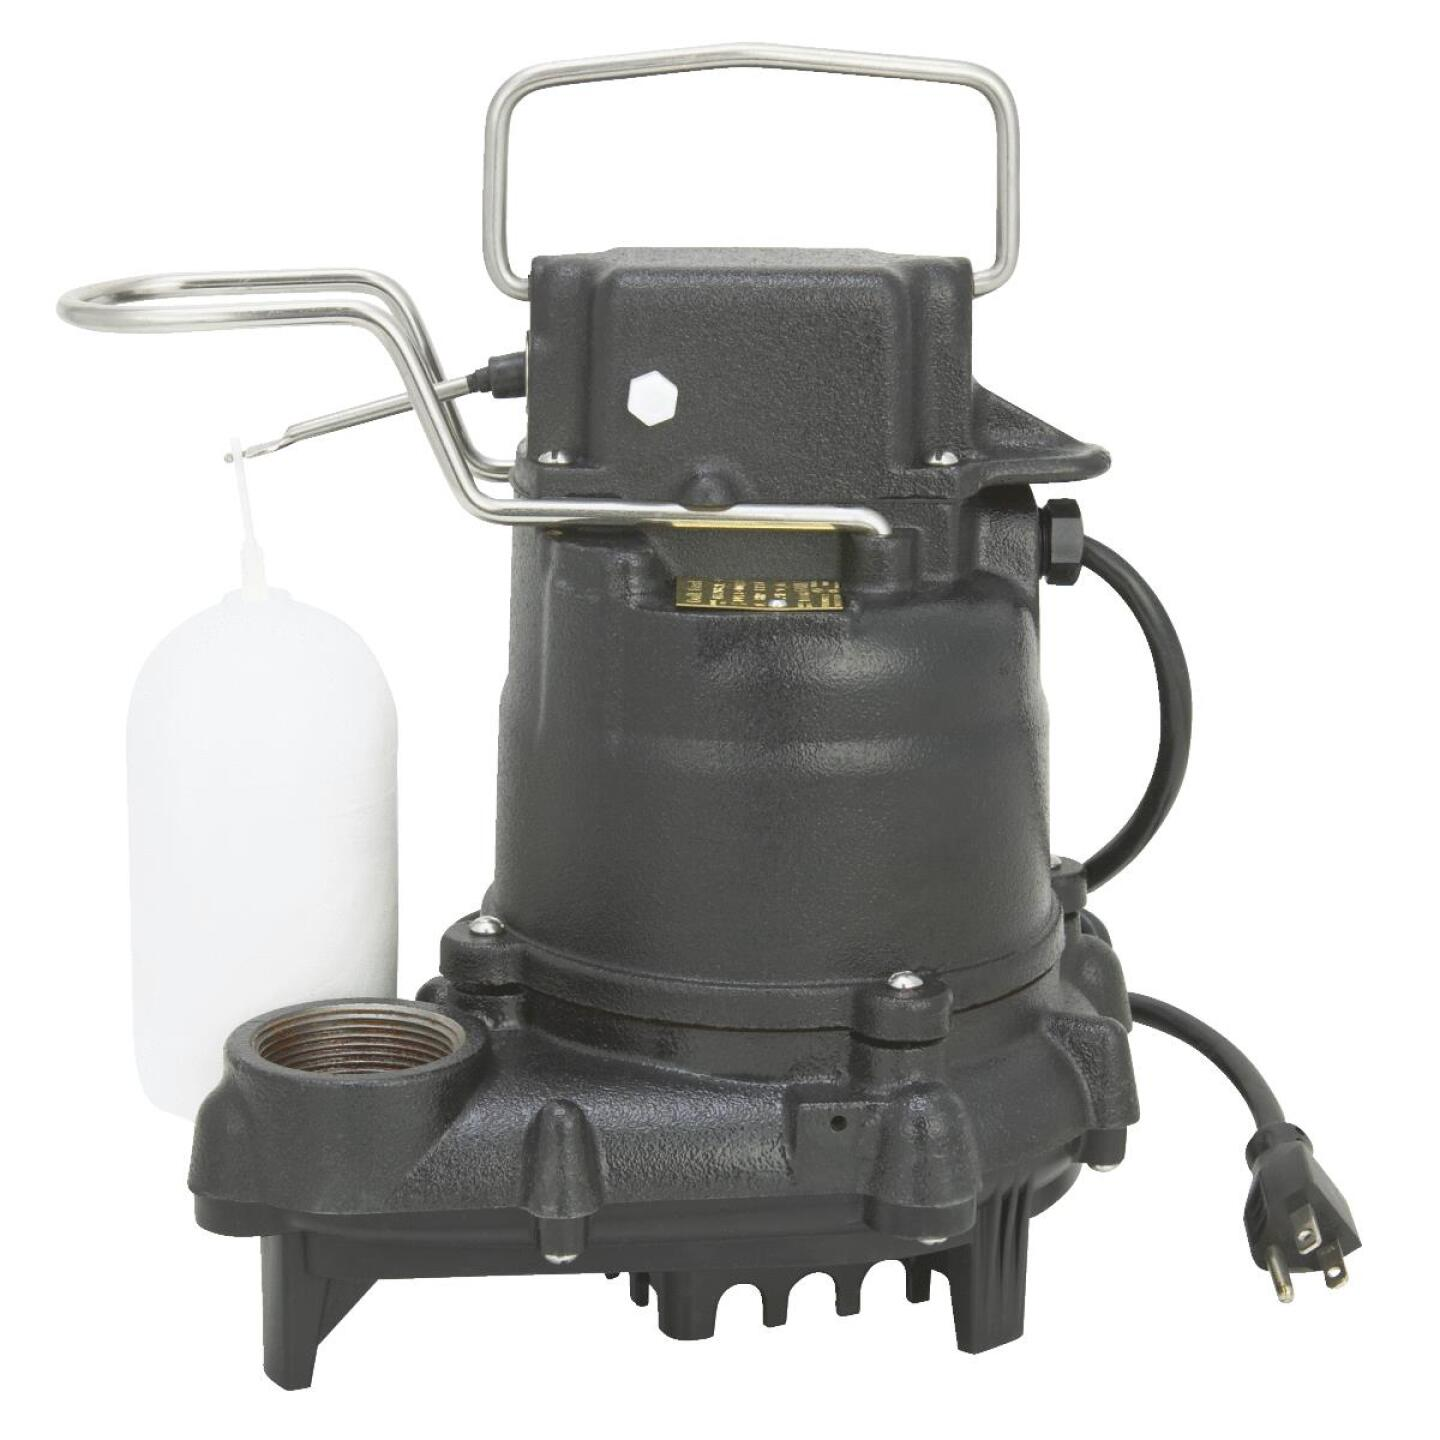 Do it Best 3/10 HP 115V Effluent and Submersible Sump Pump Image 2